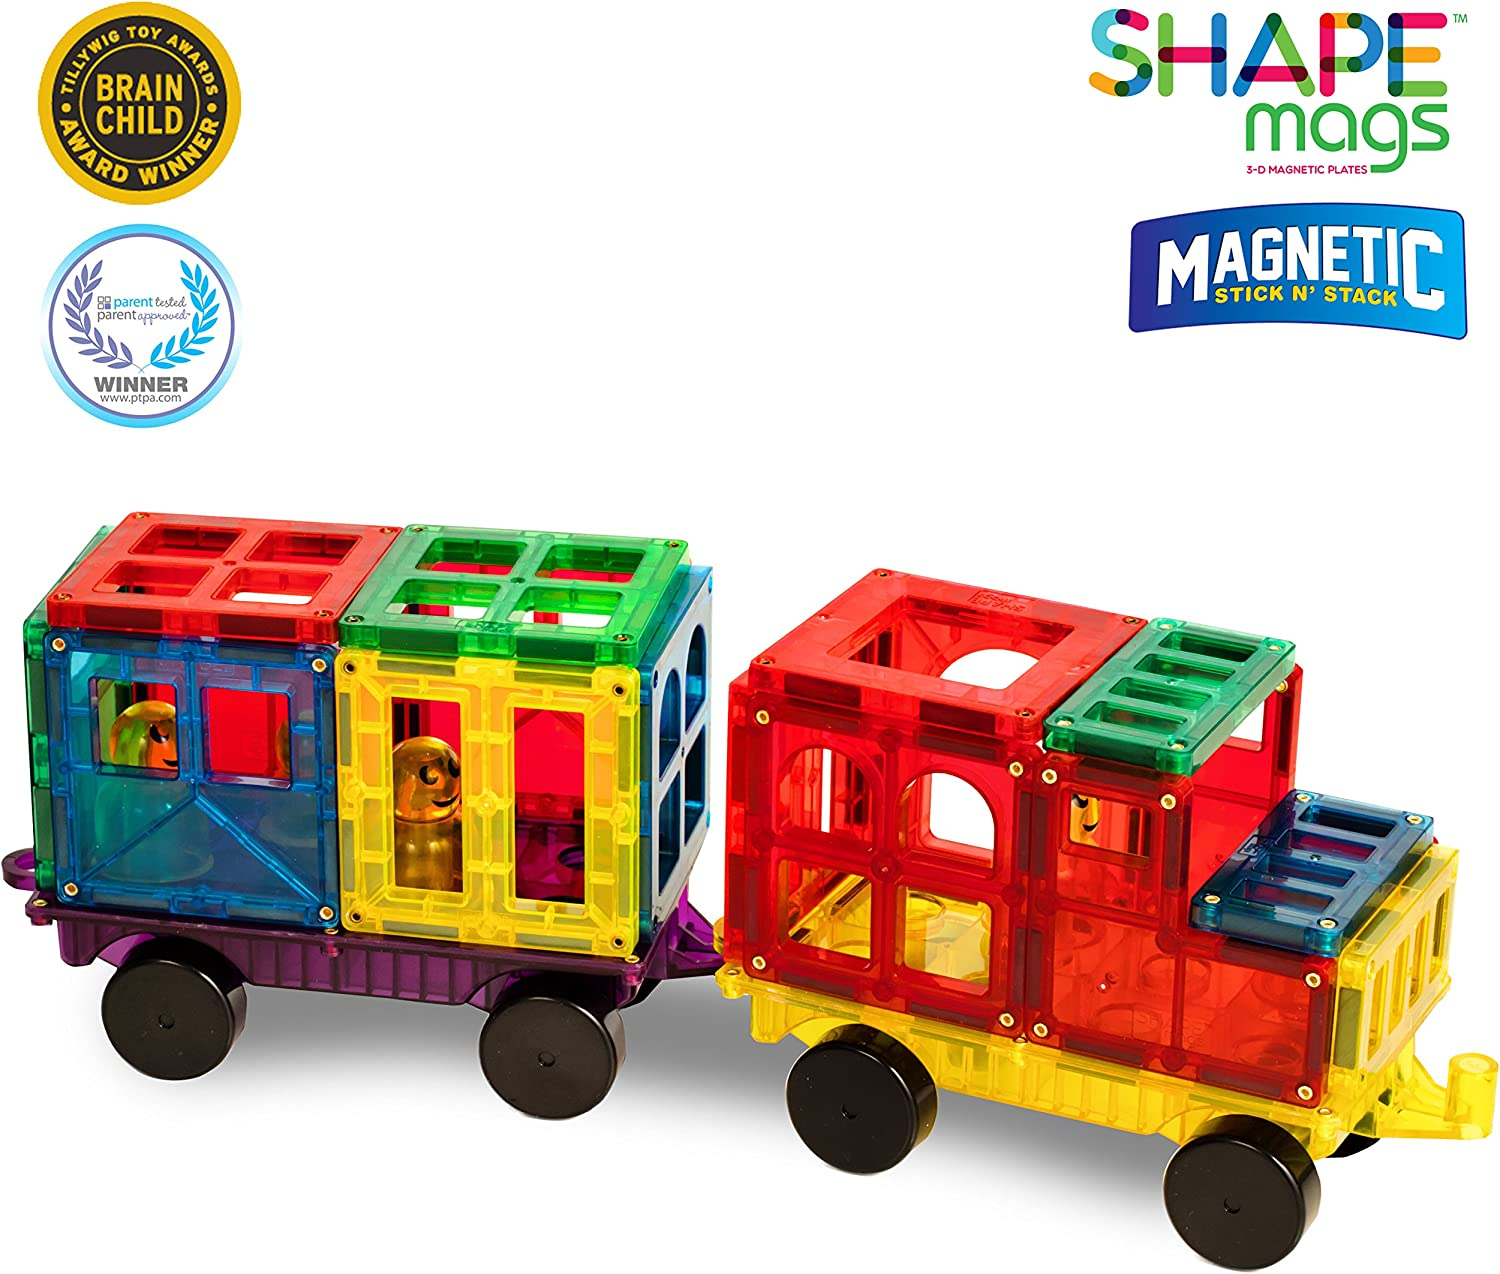 4 Car Bases Included Magnetic Stick N Stack Award Winning 100 Piece Deluxe Car Accessories Set Made with Power+Magnets